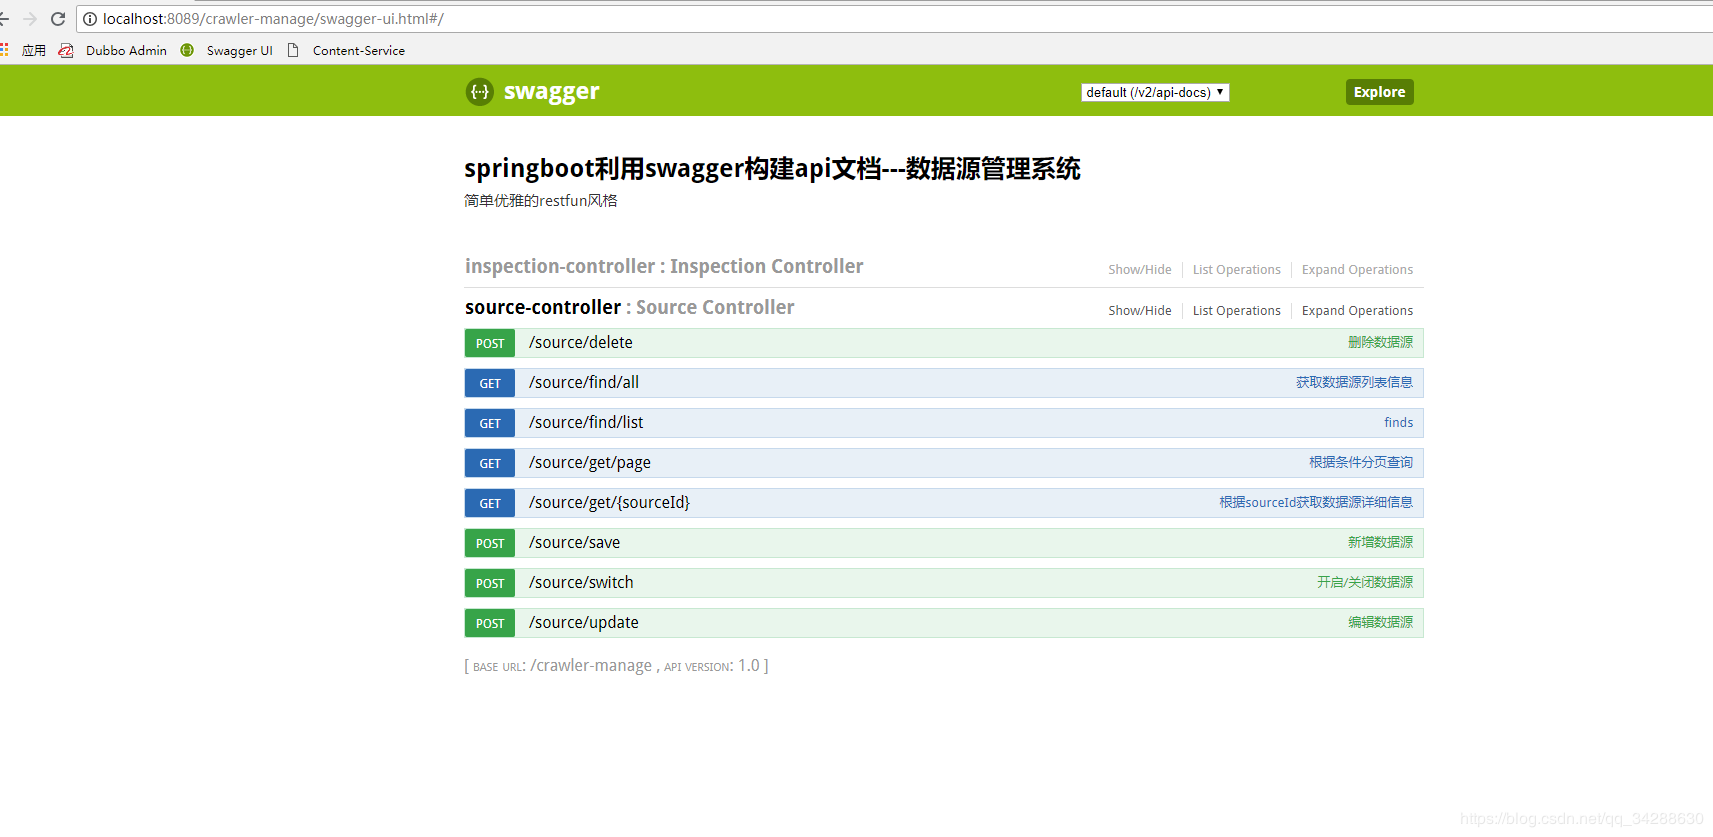 Springboot uses swagger2 0 to build api documents